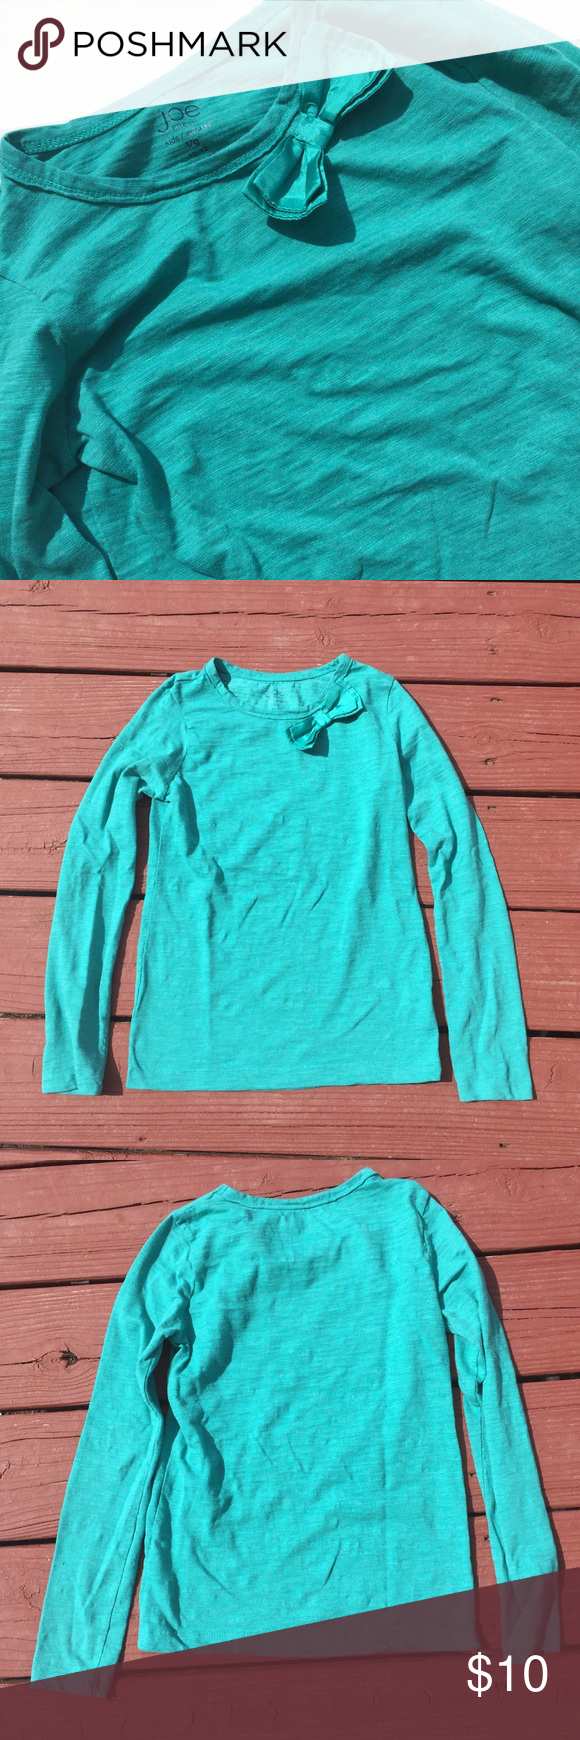 Joe Fresh Top Beautiful long sleeve top with cute bow. Super soft and lightweight. Perfect for the new school year! No flaws. Joe Fresh Shirts & Tops